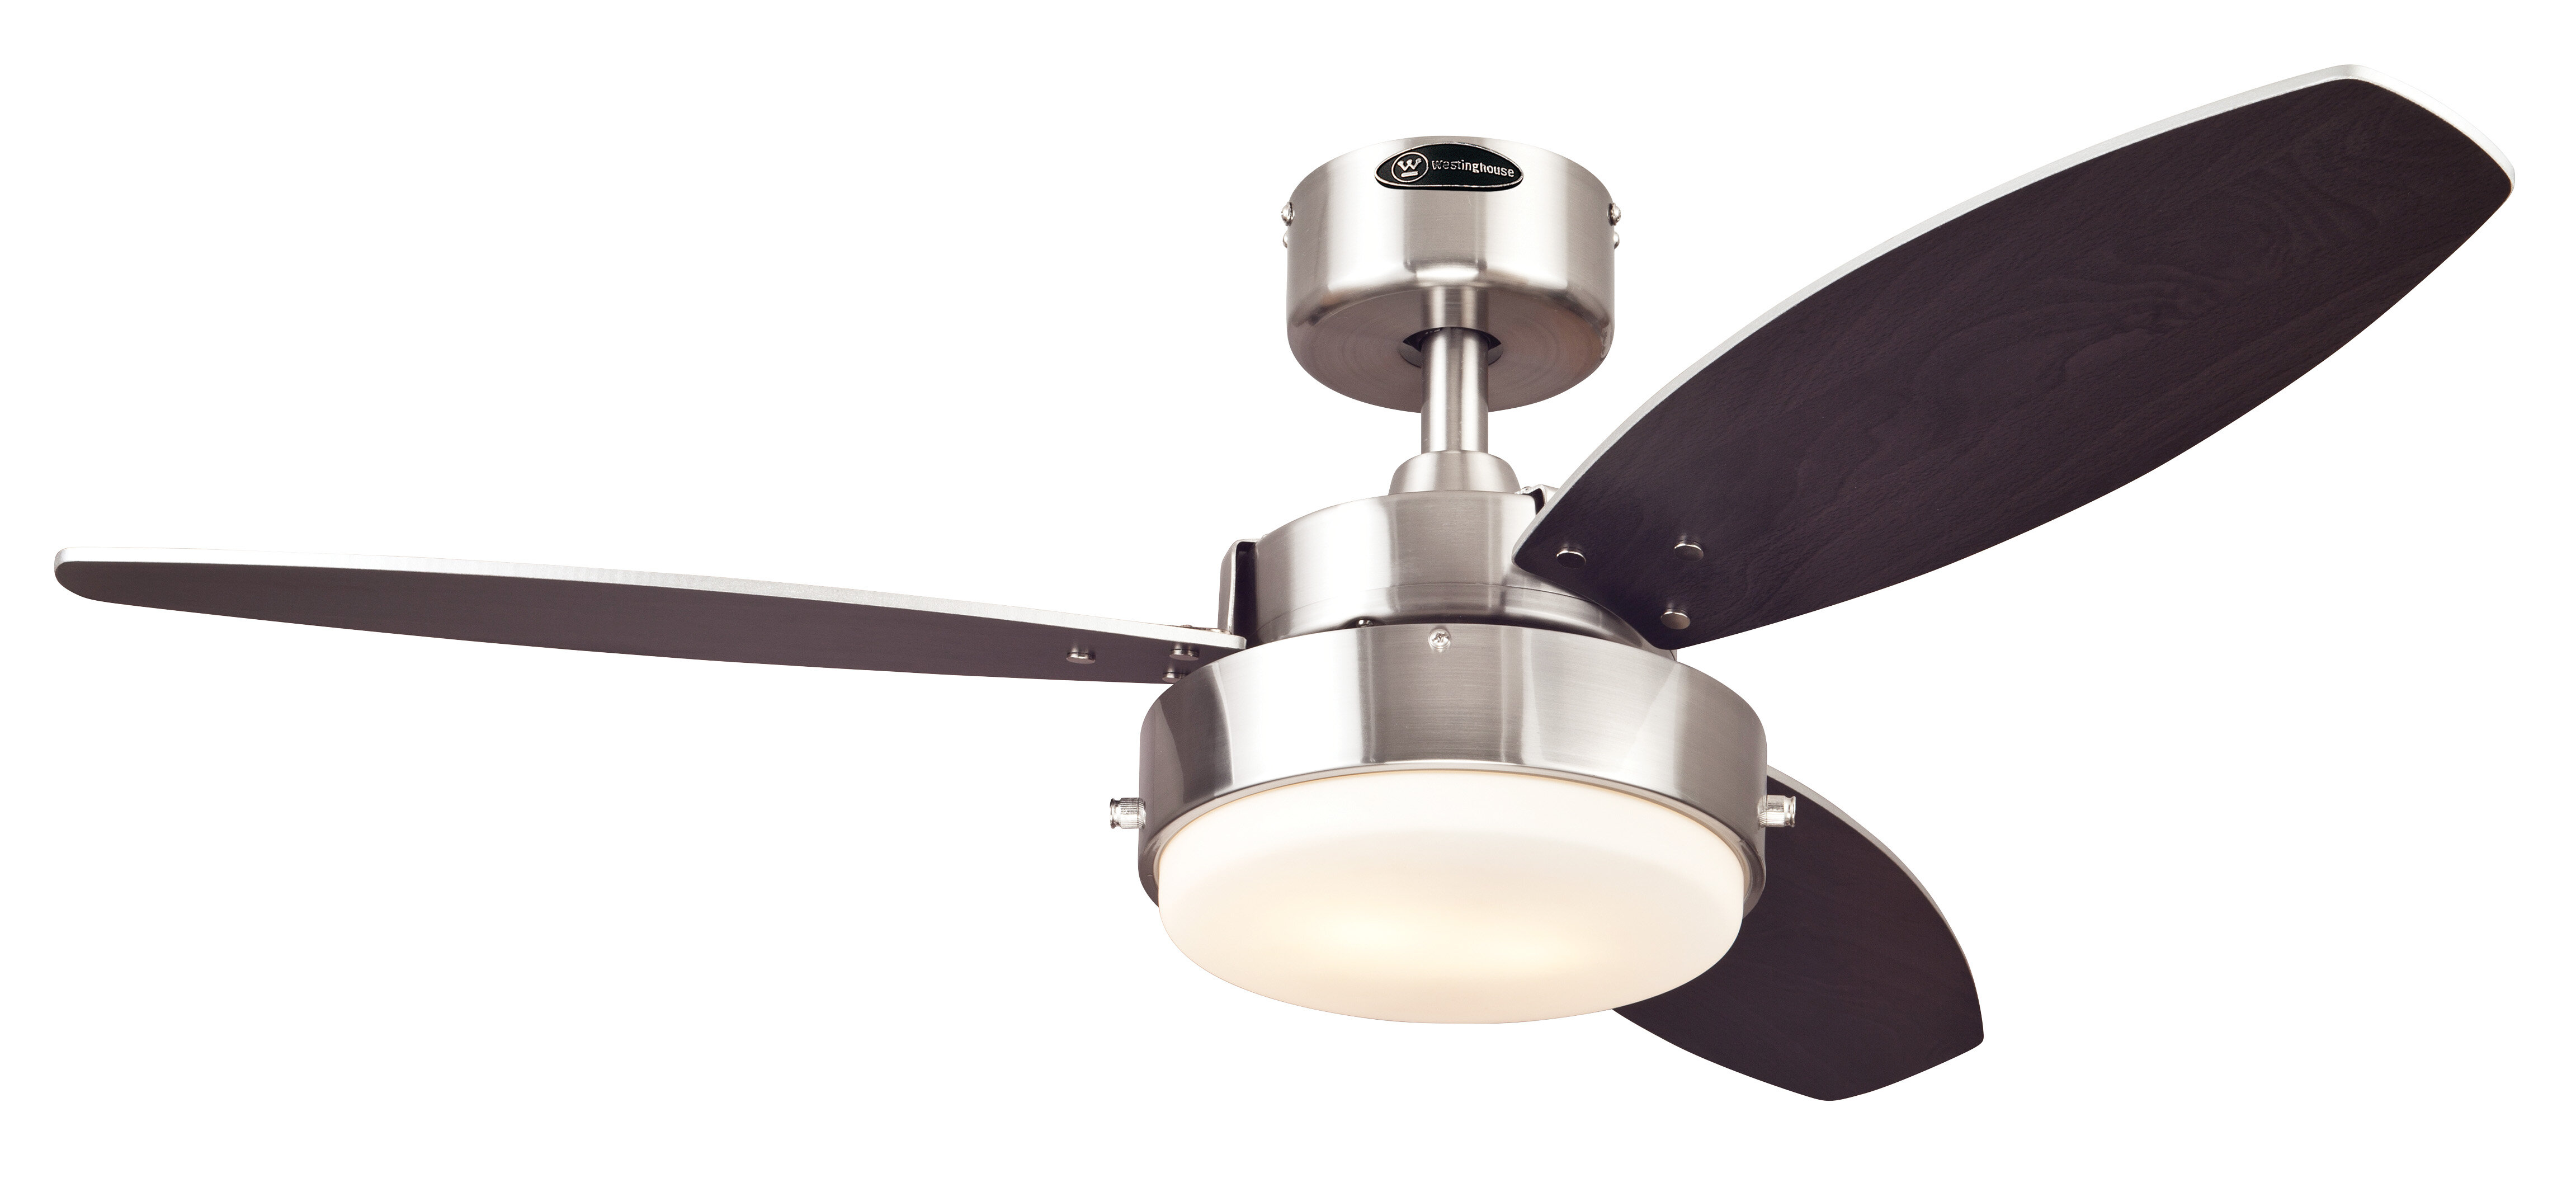 integrated ceiling fan led bn ceilings remote three blade with finish control nickel dc includes brushed